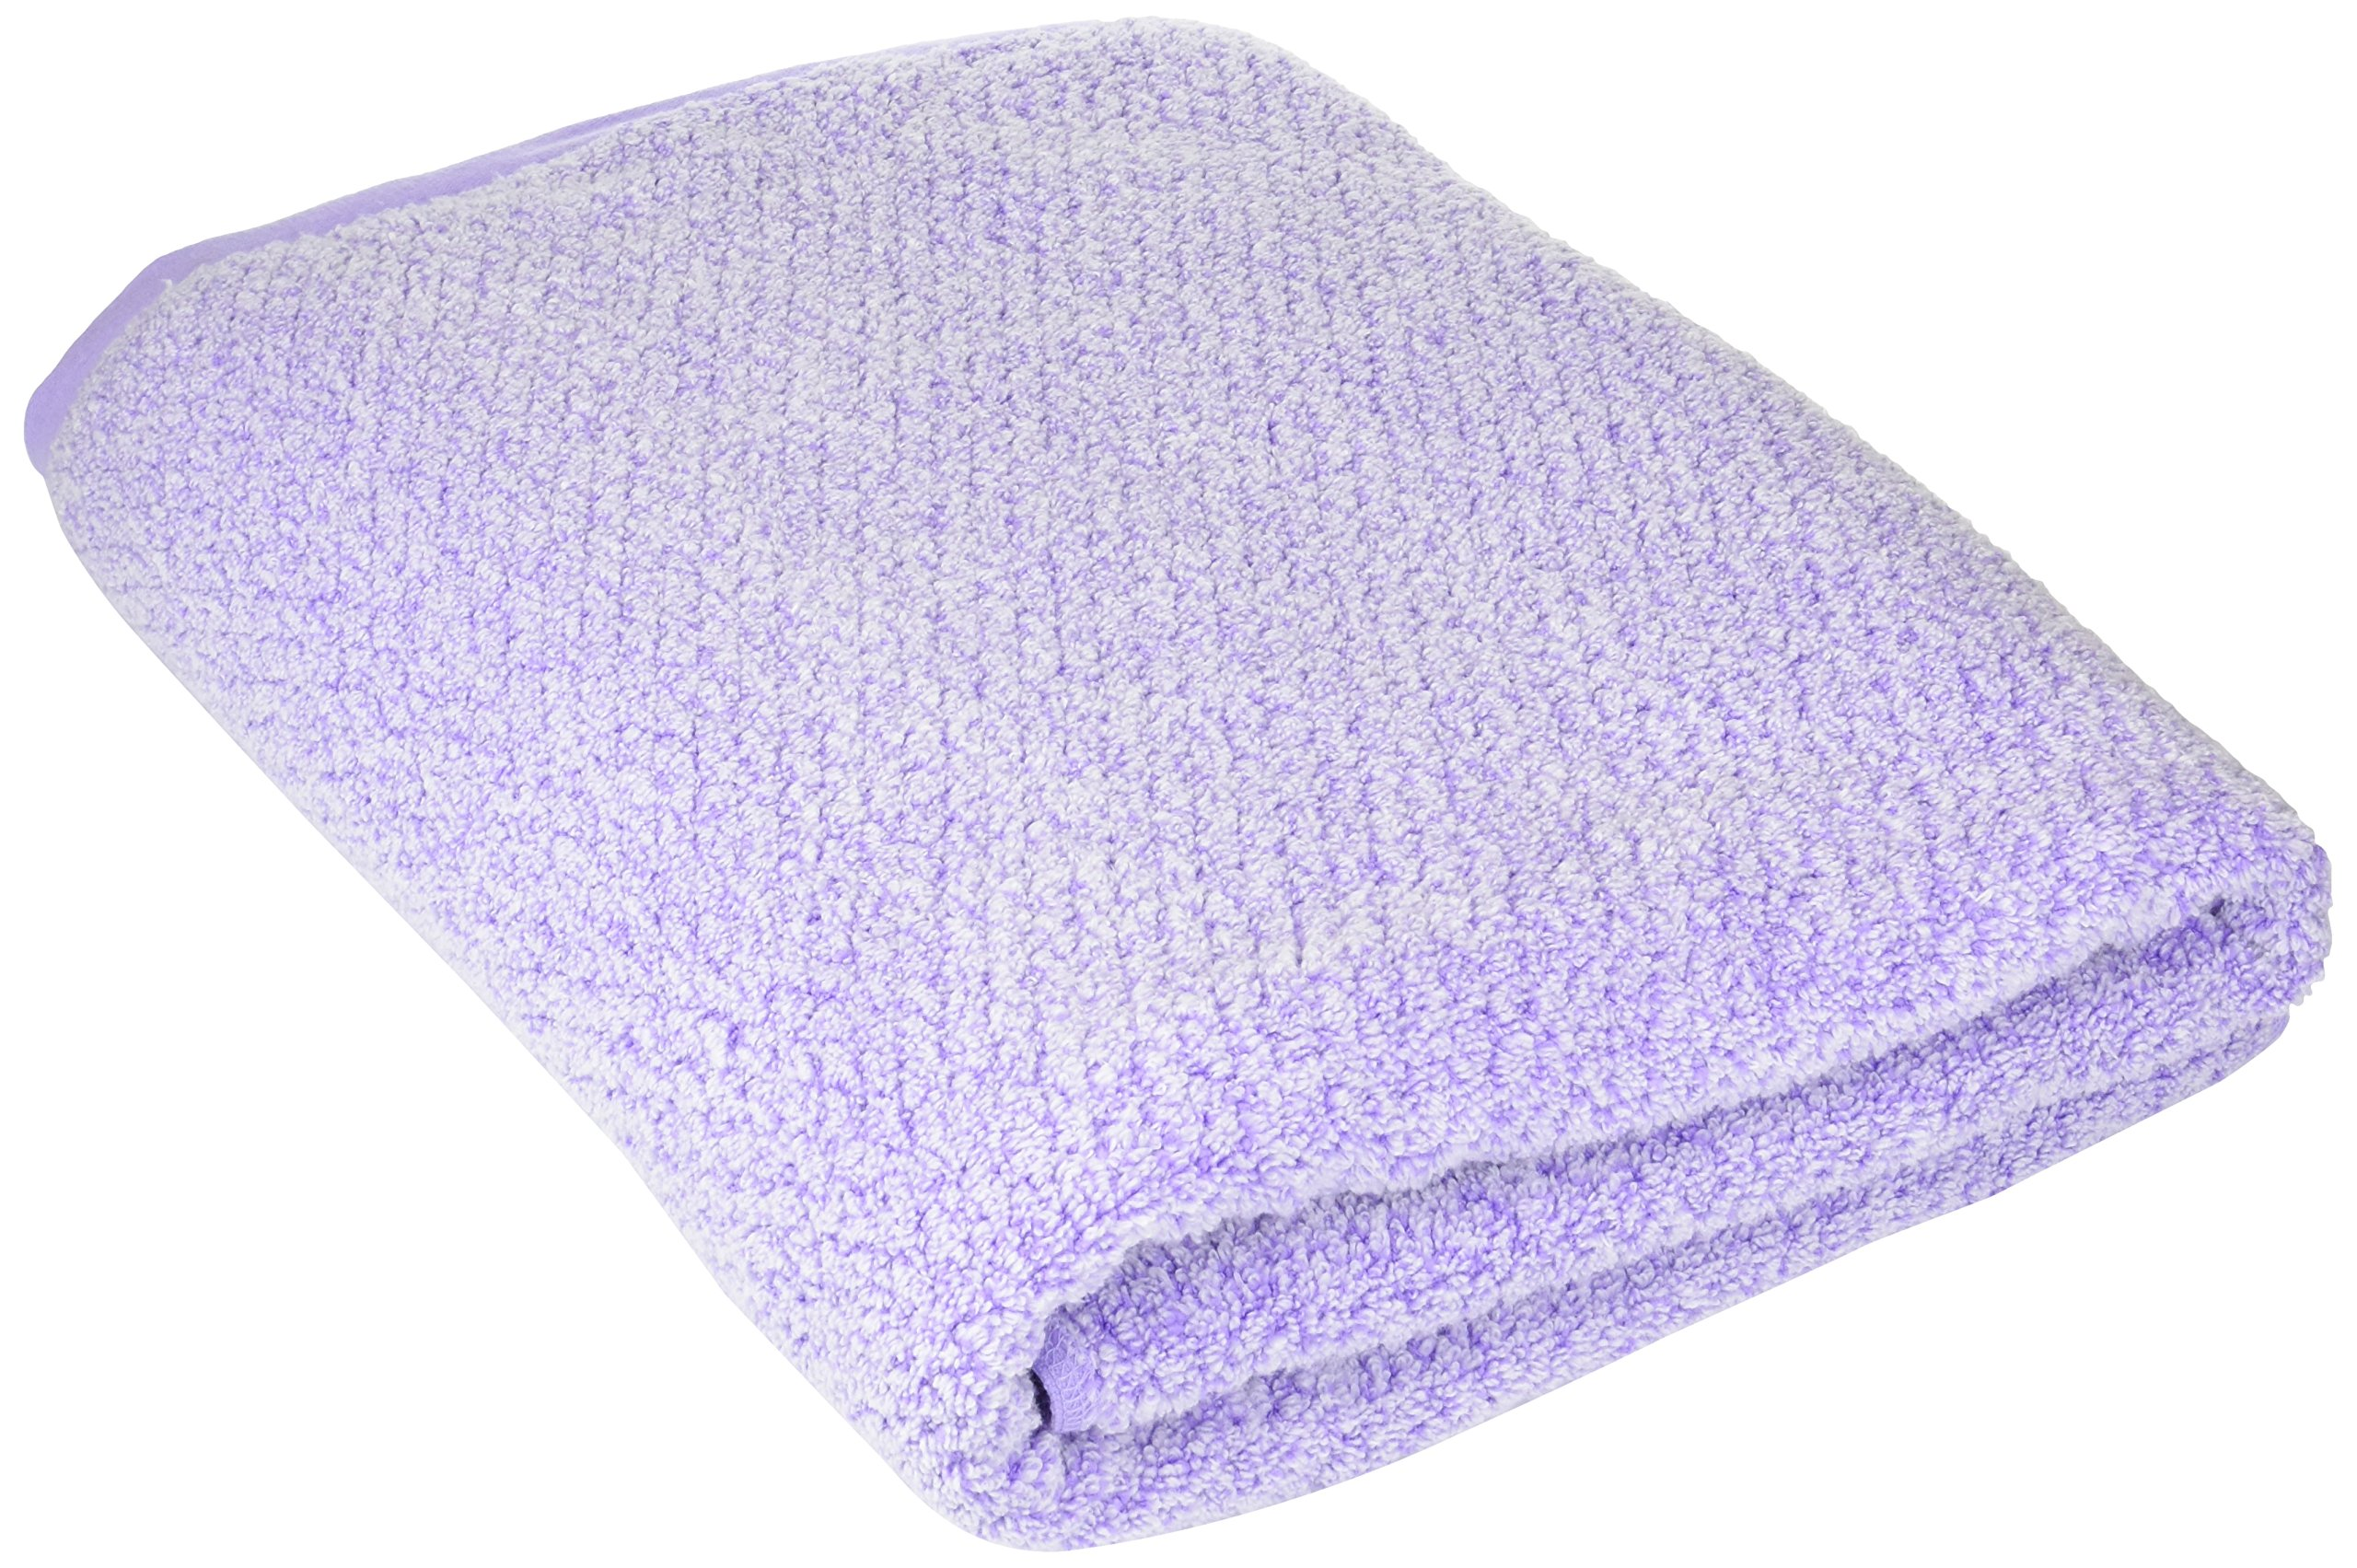 Everplush Diamond Jacquard Bath Sheet in Lavender